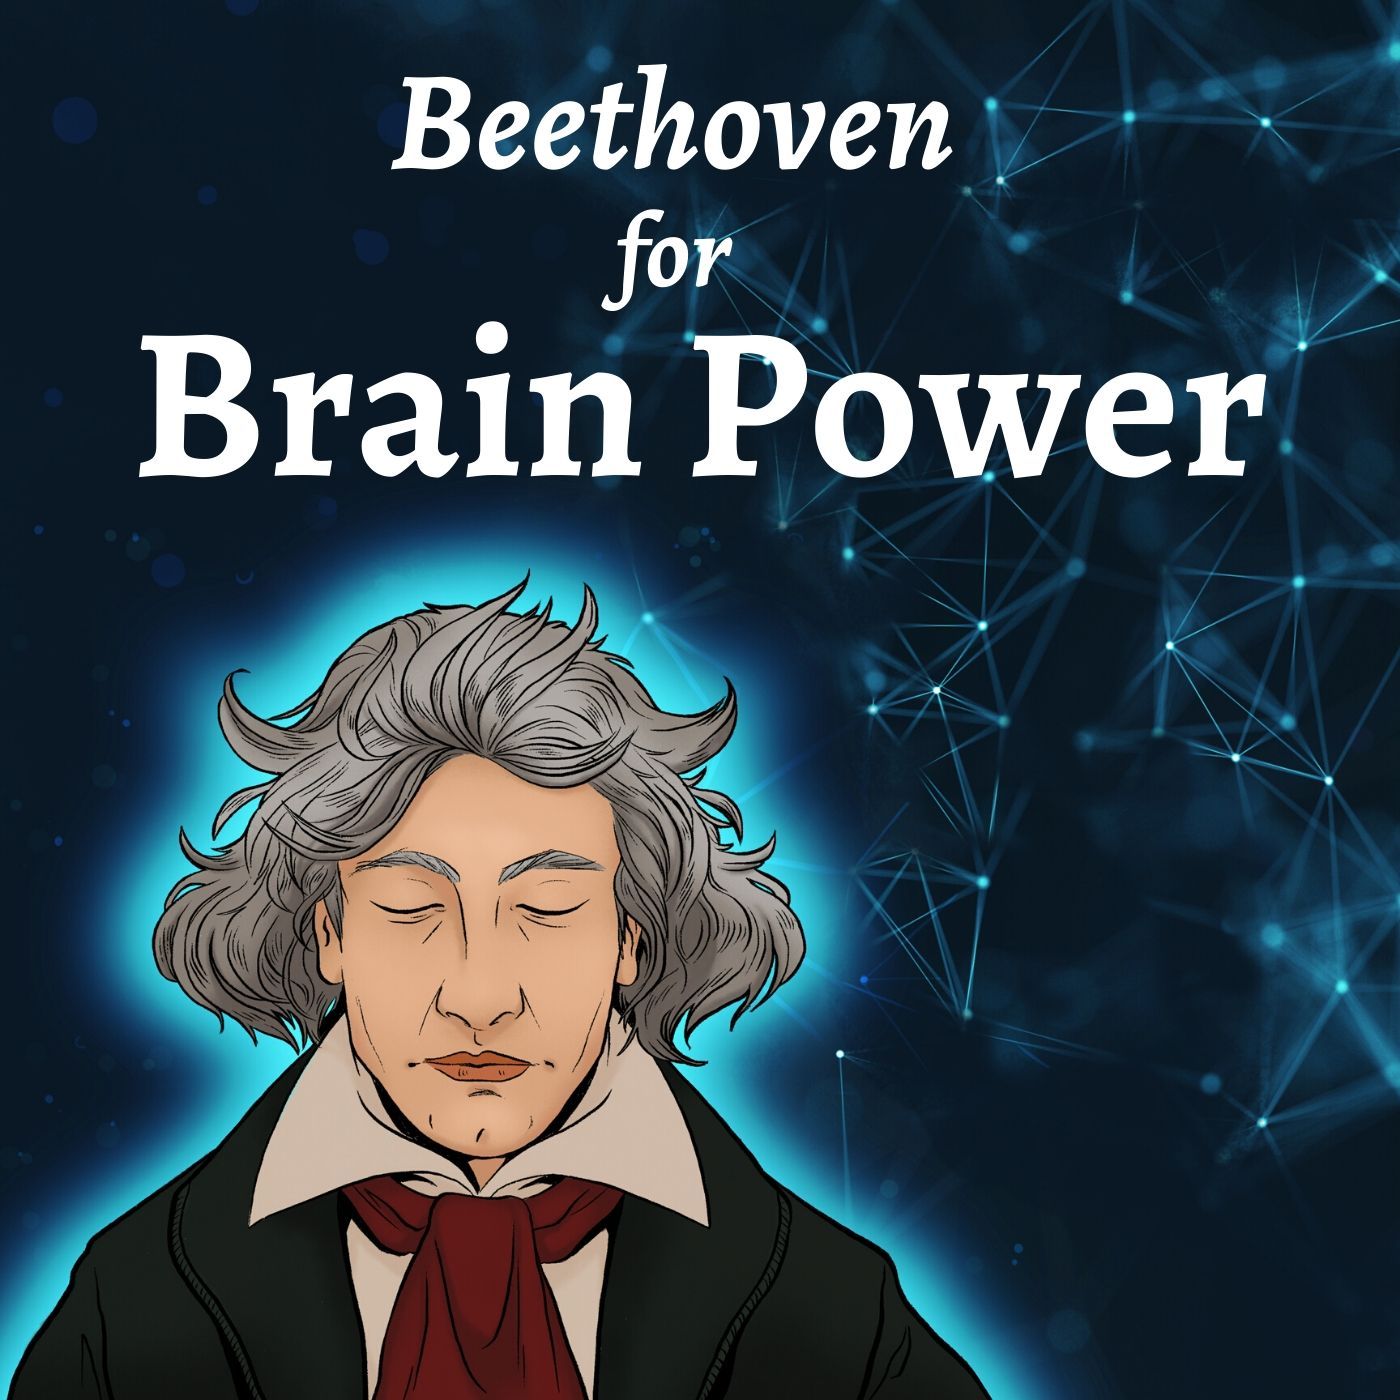 Beethoven for Brain Power